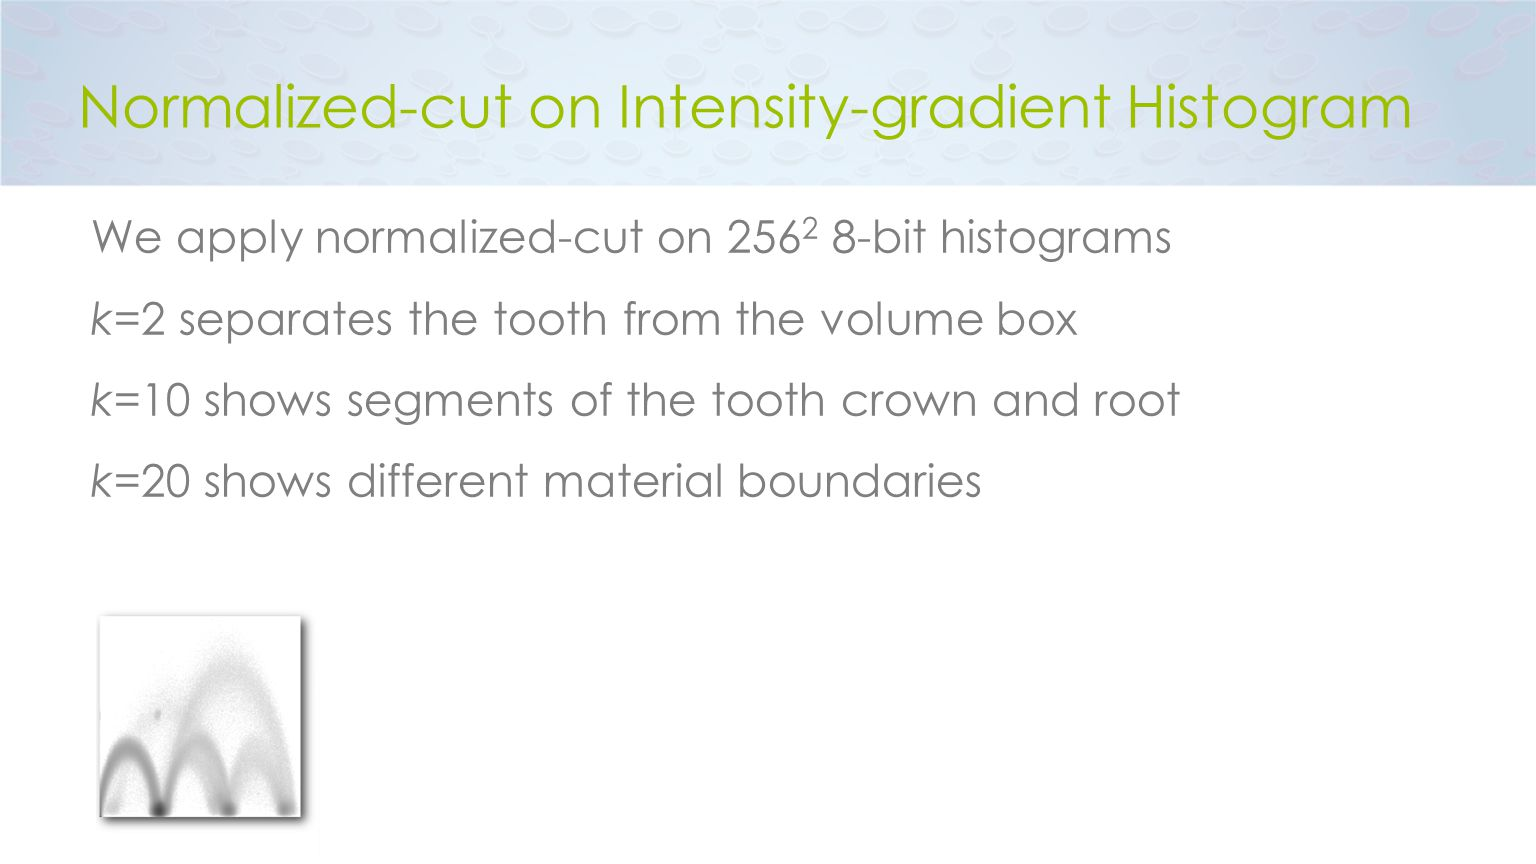 Normalized-cut on Intensity-gradient Histogram